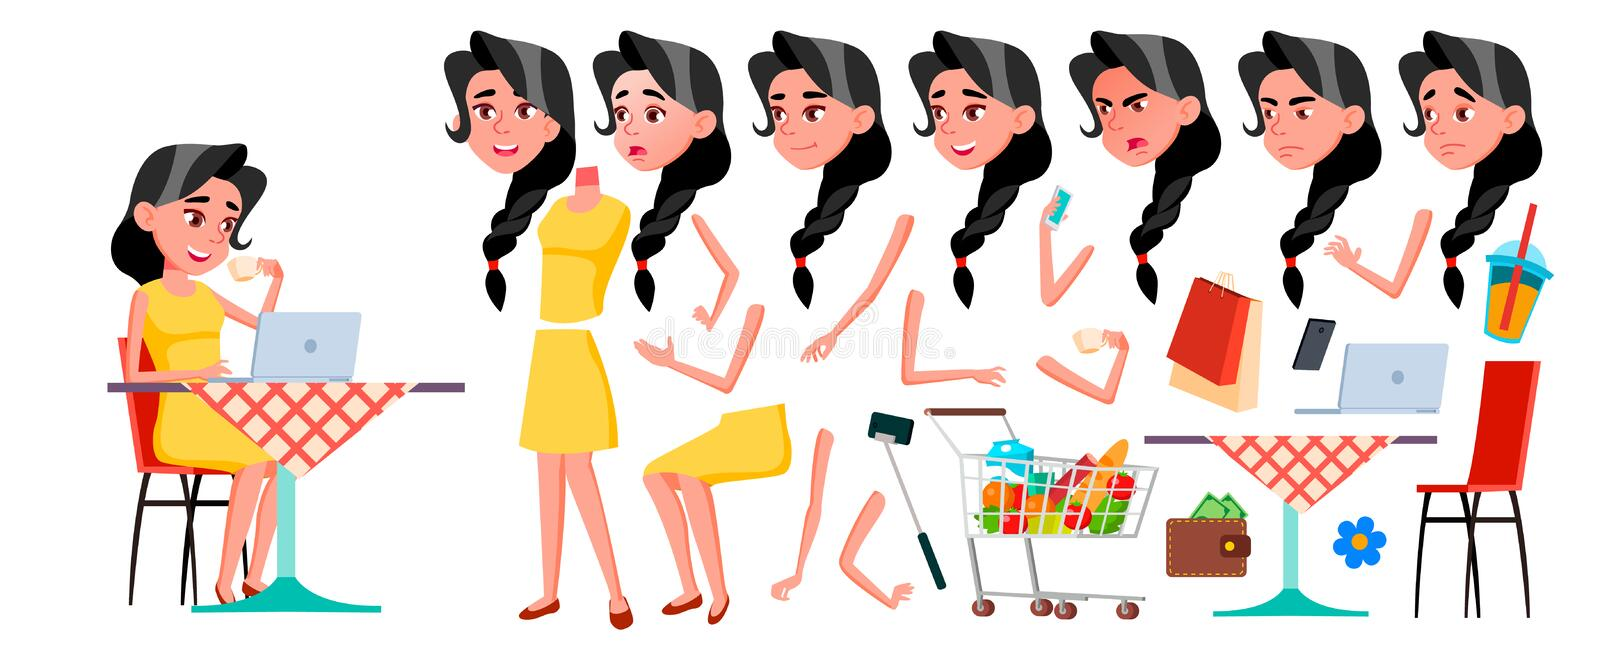 Teen Girl Vector. Animation Creation Set. Face Emotions, Gestures. Face. Children. Animated. For Advertising, Booklet. Placard Design Cartoon Illustration royalty free illustration